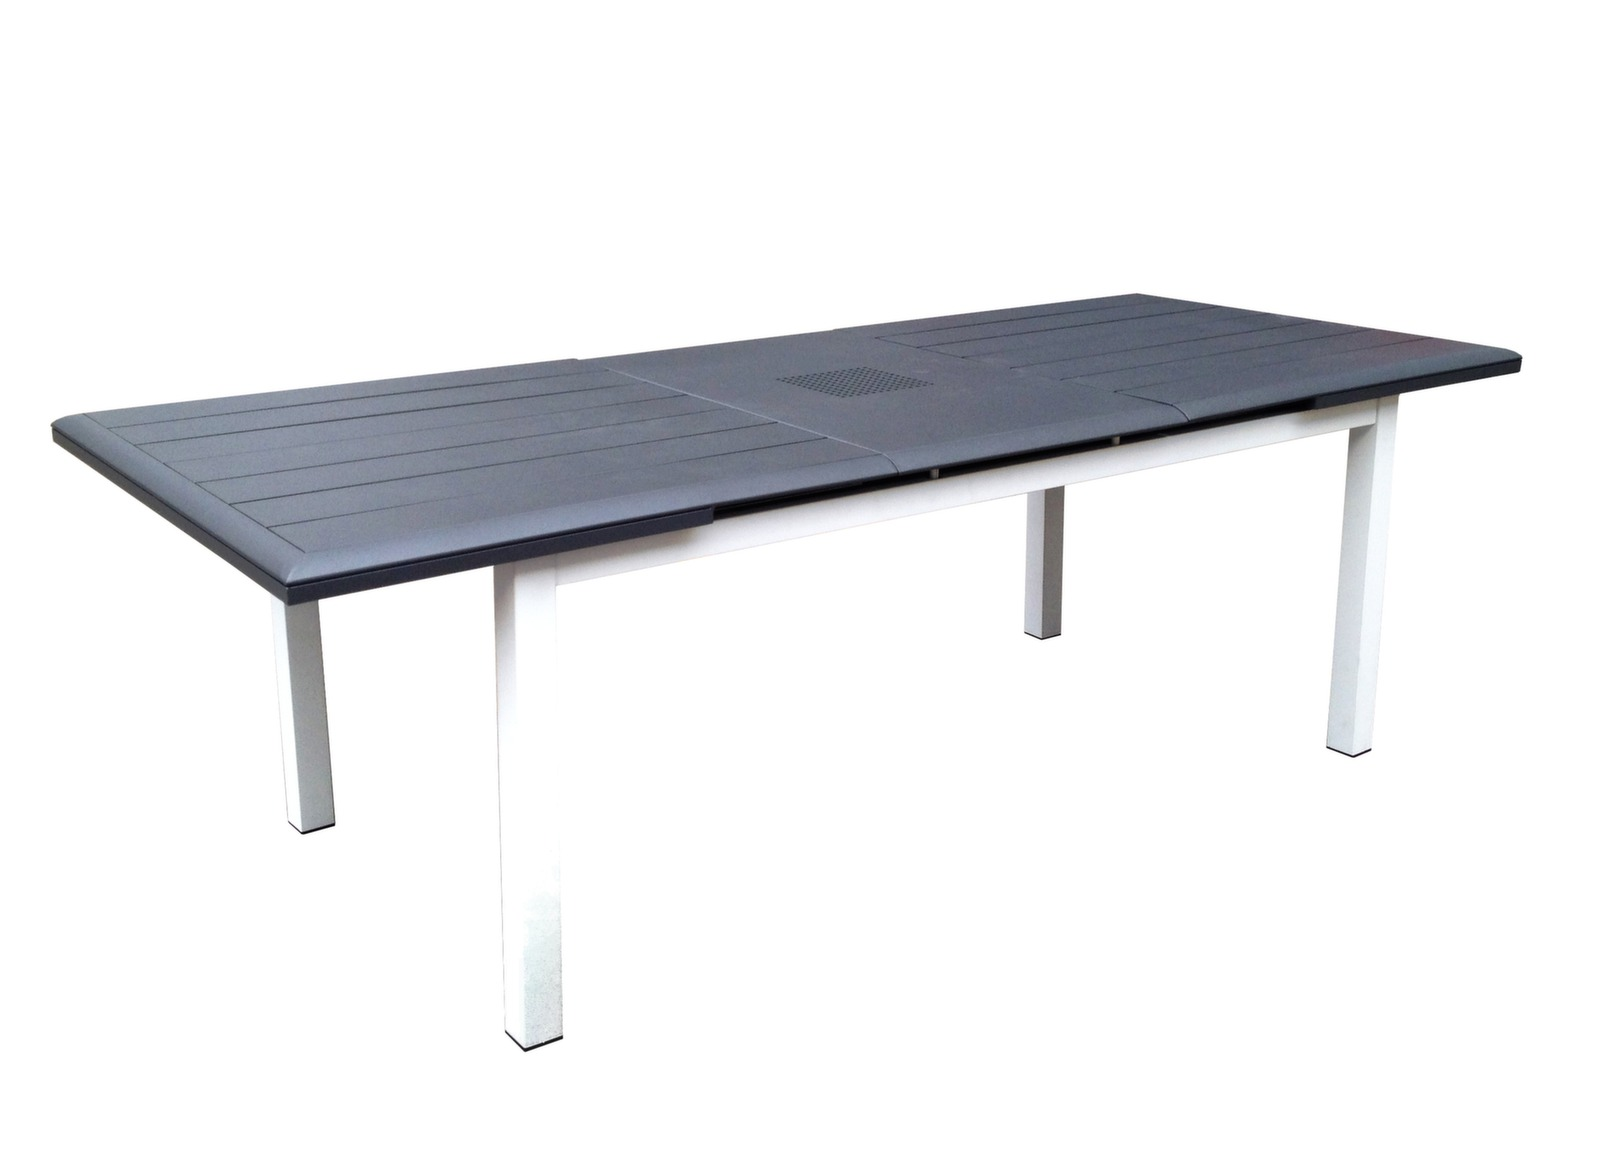 Table louisiane 180 240 blanc grey tables de jardin meubles de jardin en - Cote table vente en ligne ...